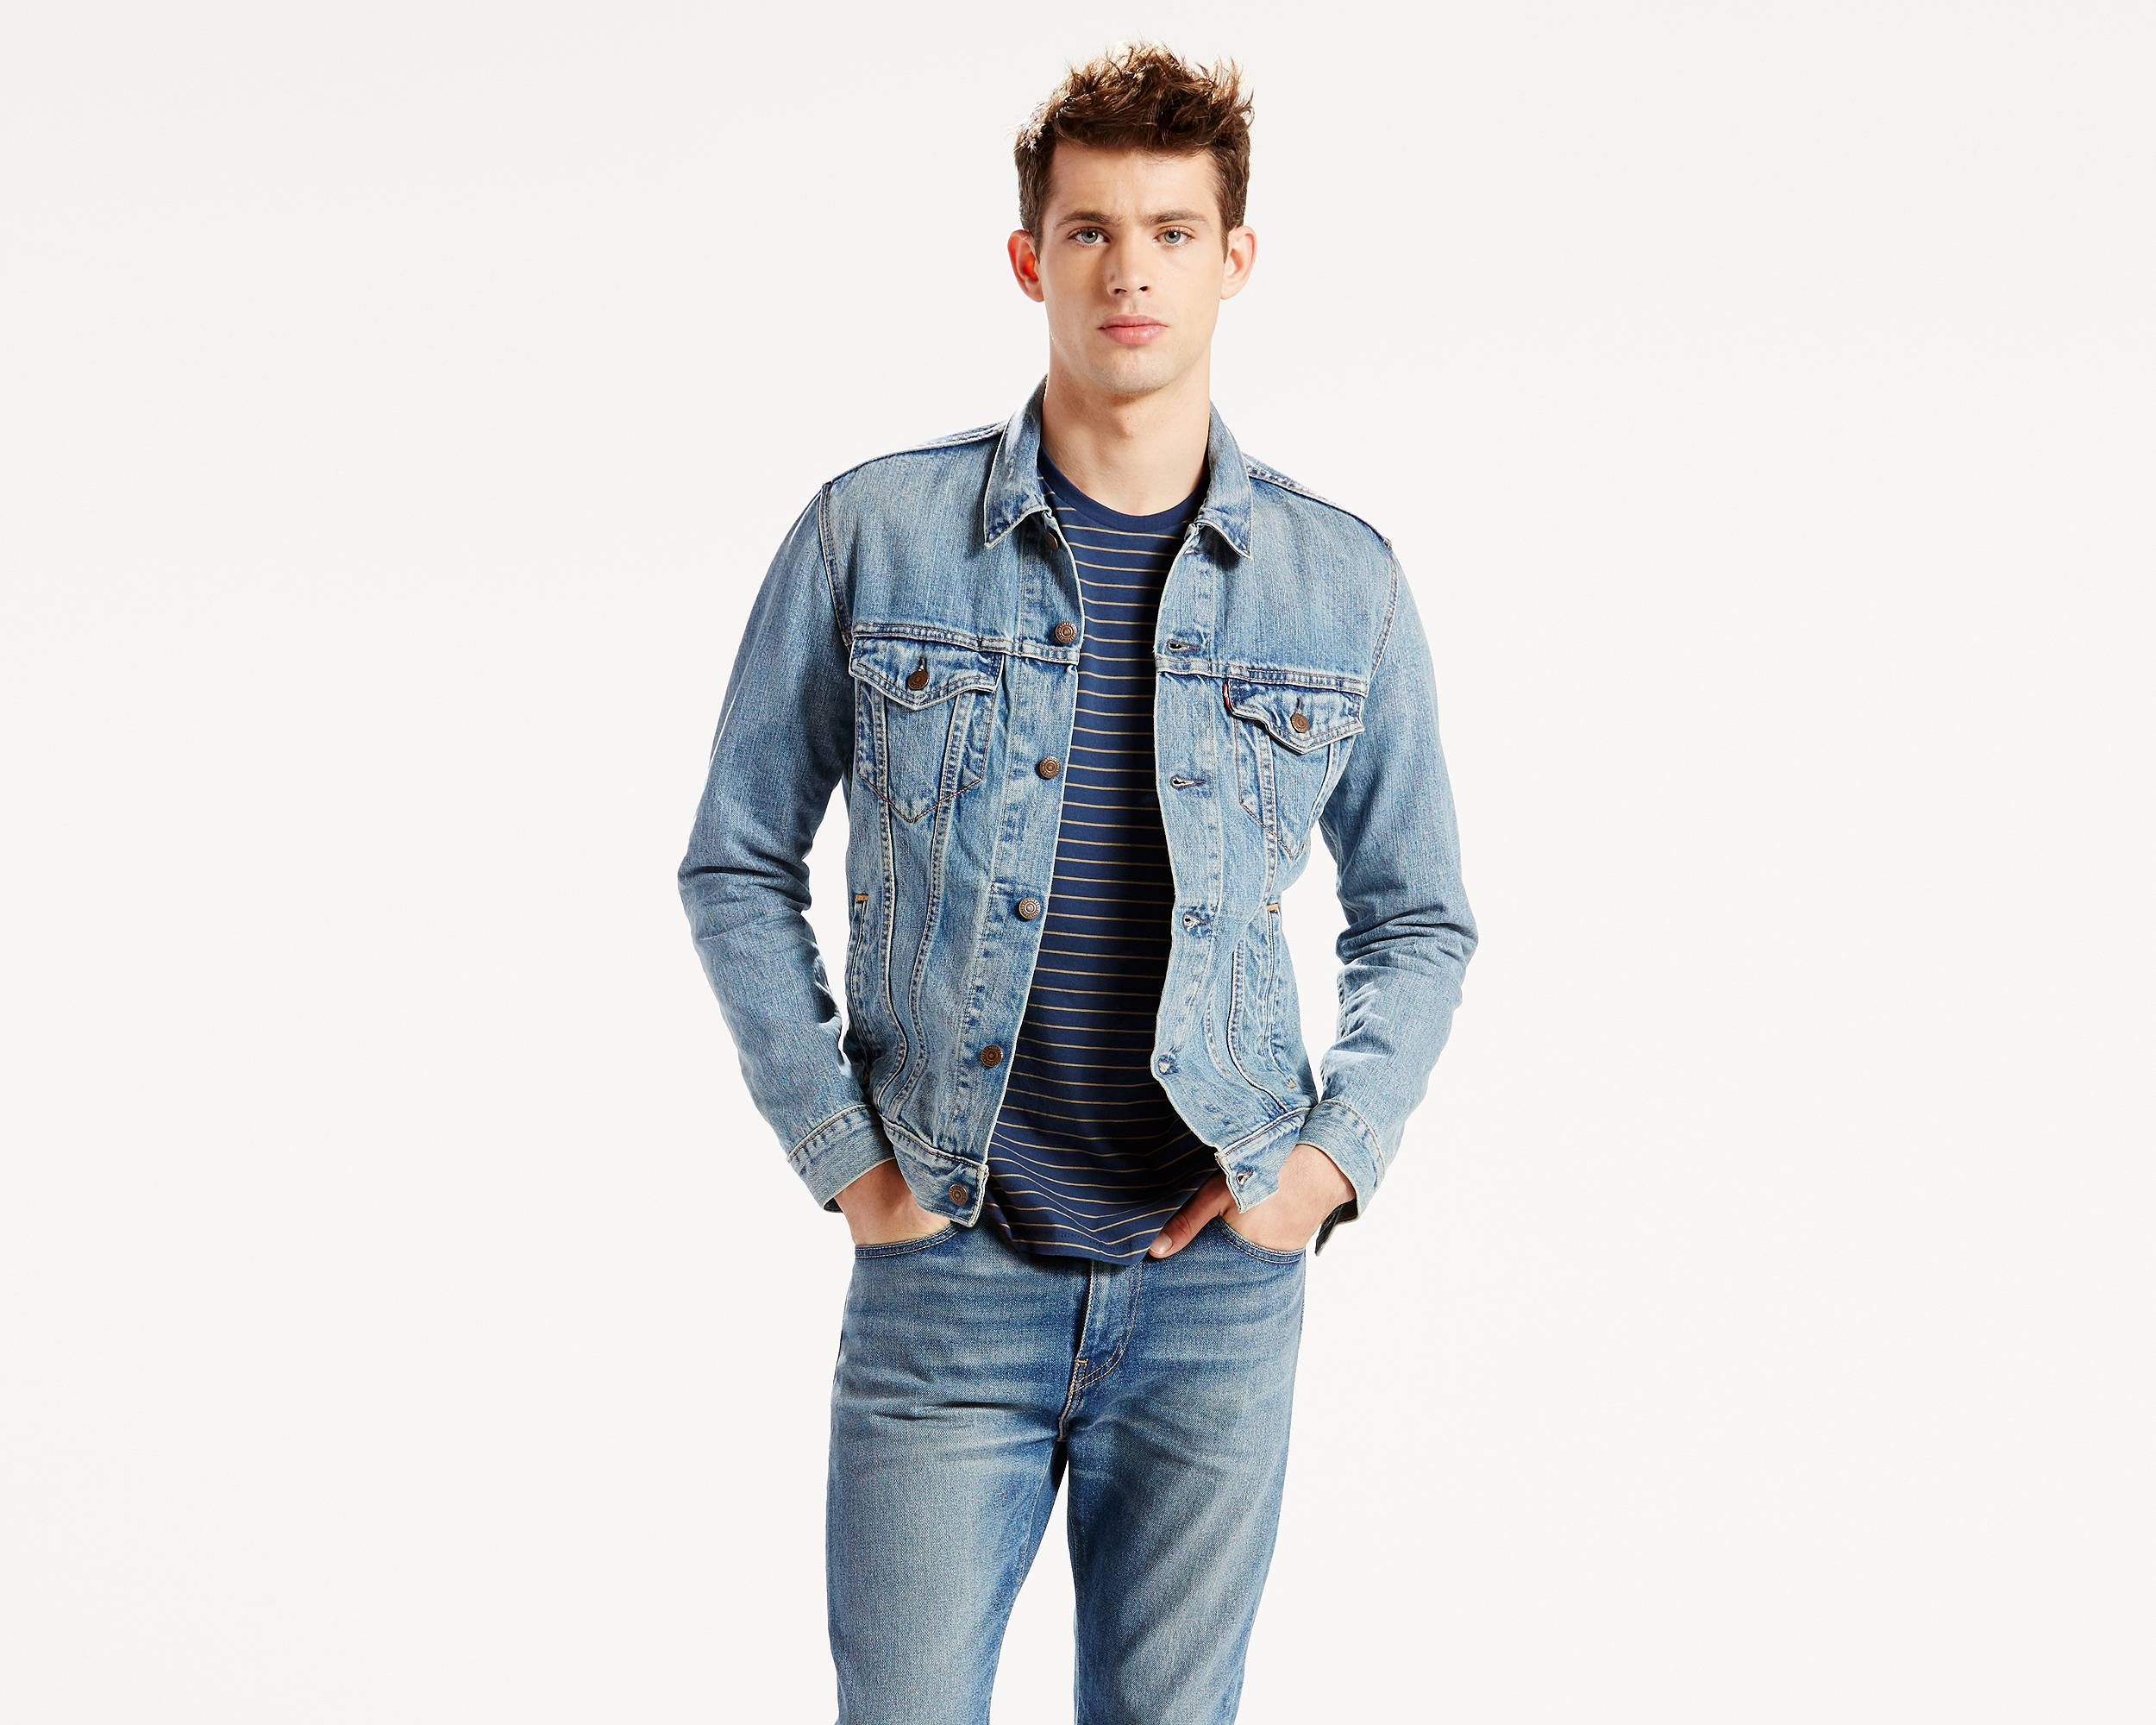 Levi's Trucker Jean Jacket - I'm taking a cue from Jack Pearson on this one. Every man should have a jean jacket in his closet. They are so versatile, look good on everyone, and last forever. The Levi's Trucker comes in a variety of washes so you'll be sure to find the color that's perfect for your husband, brother, dad, cousin, uncle…seriously everyone can benefit from this jacket!